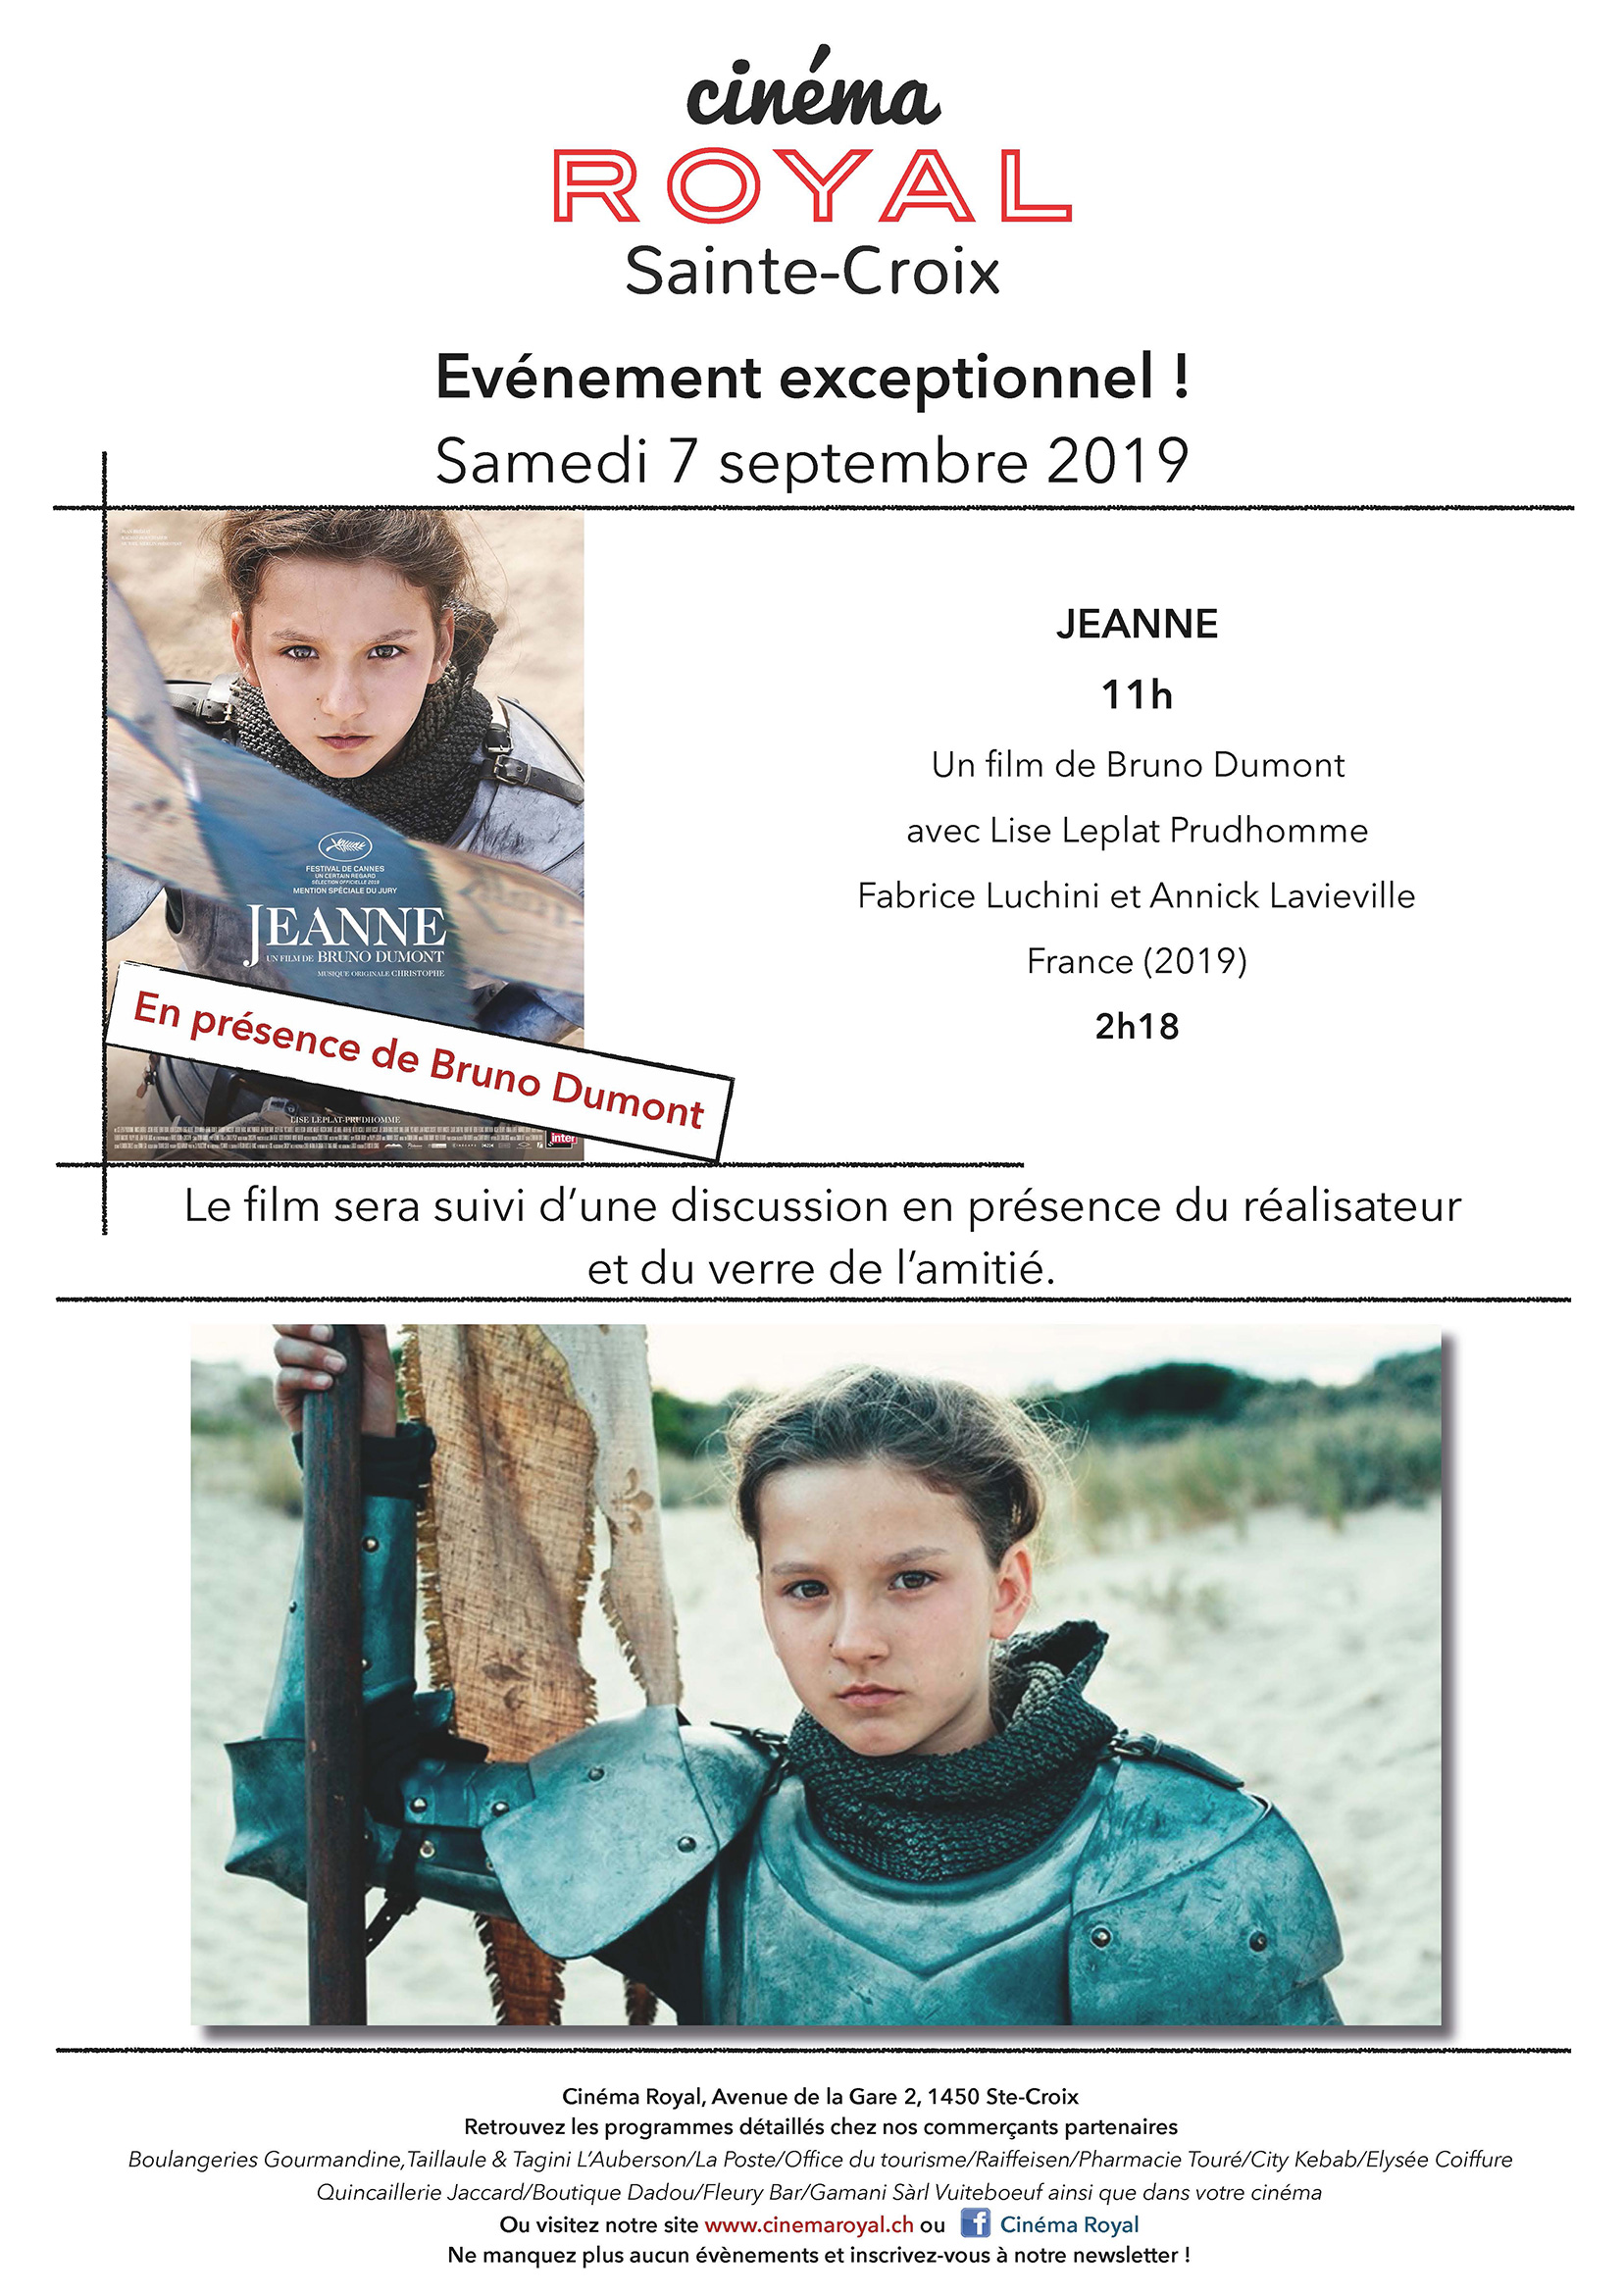 EventJeanne